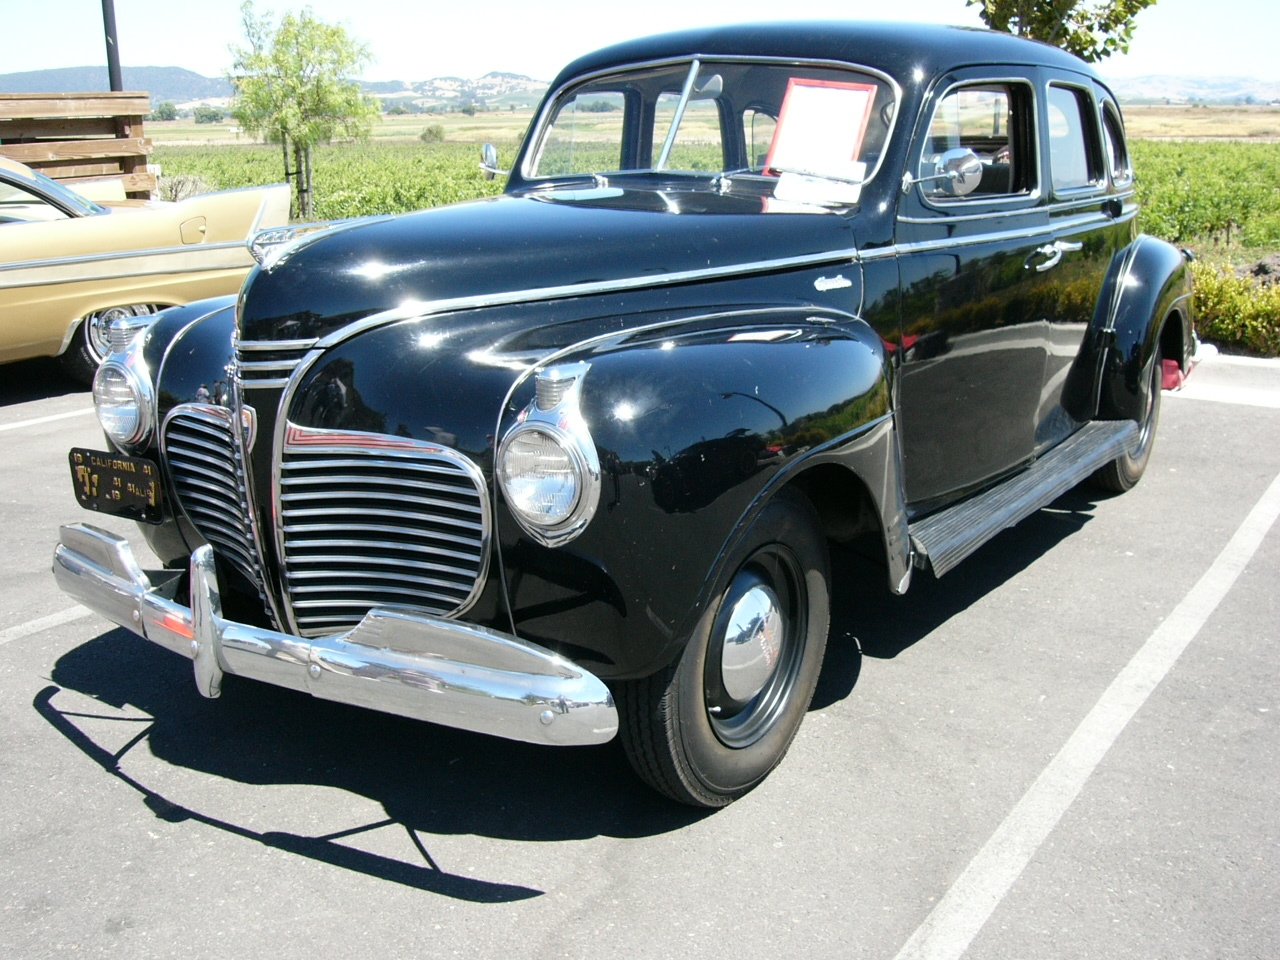 1941 plymouth special deluxe by roadtripdog on deviantart for 1941 plymouth deluxe 4 door